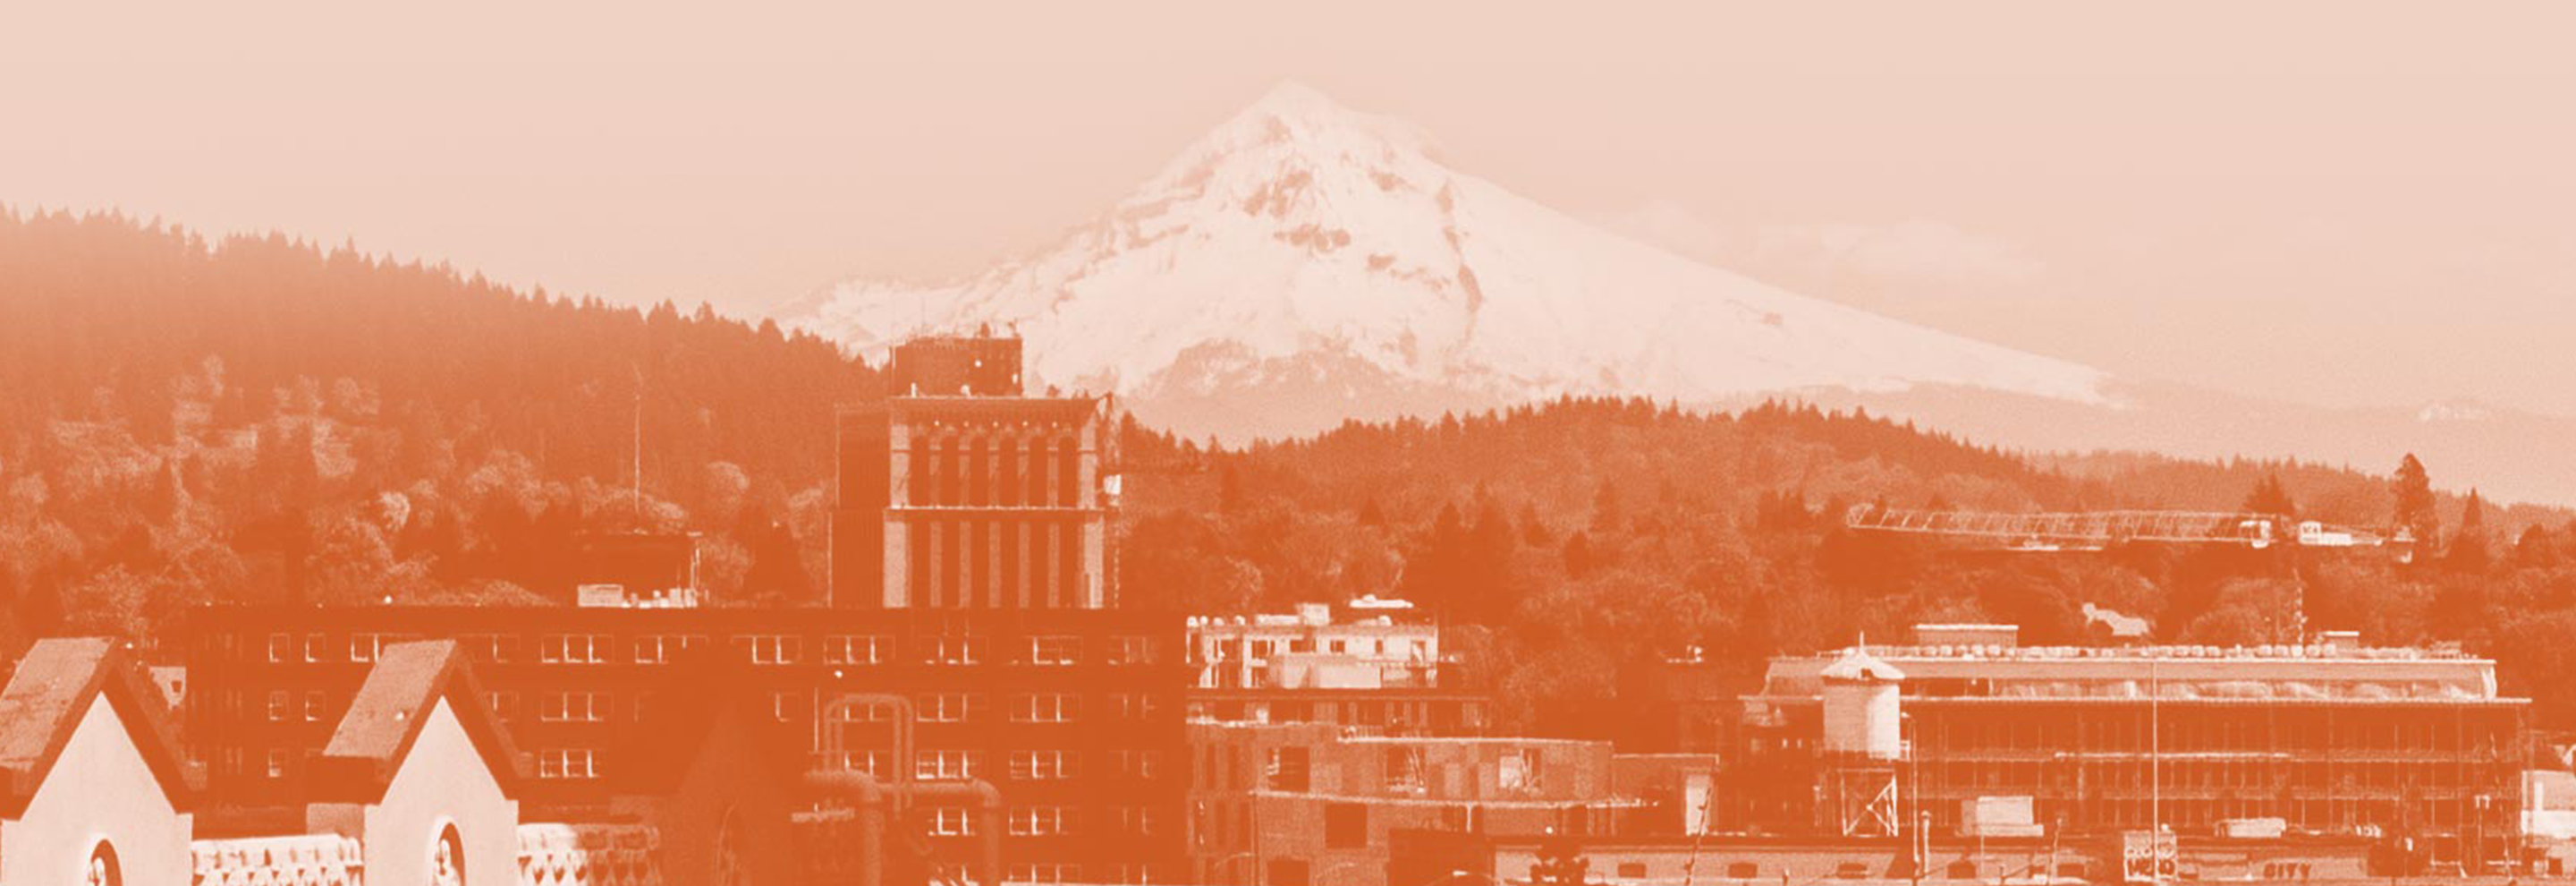 The Portland, Oregon skyline with Mount Hood in the background